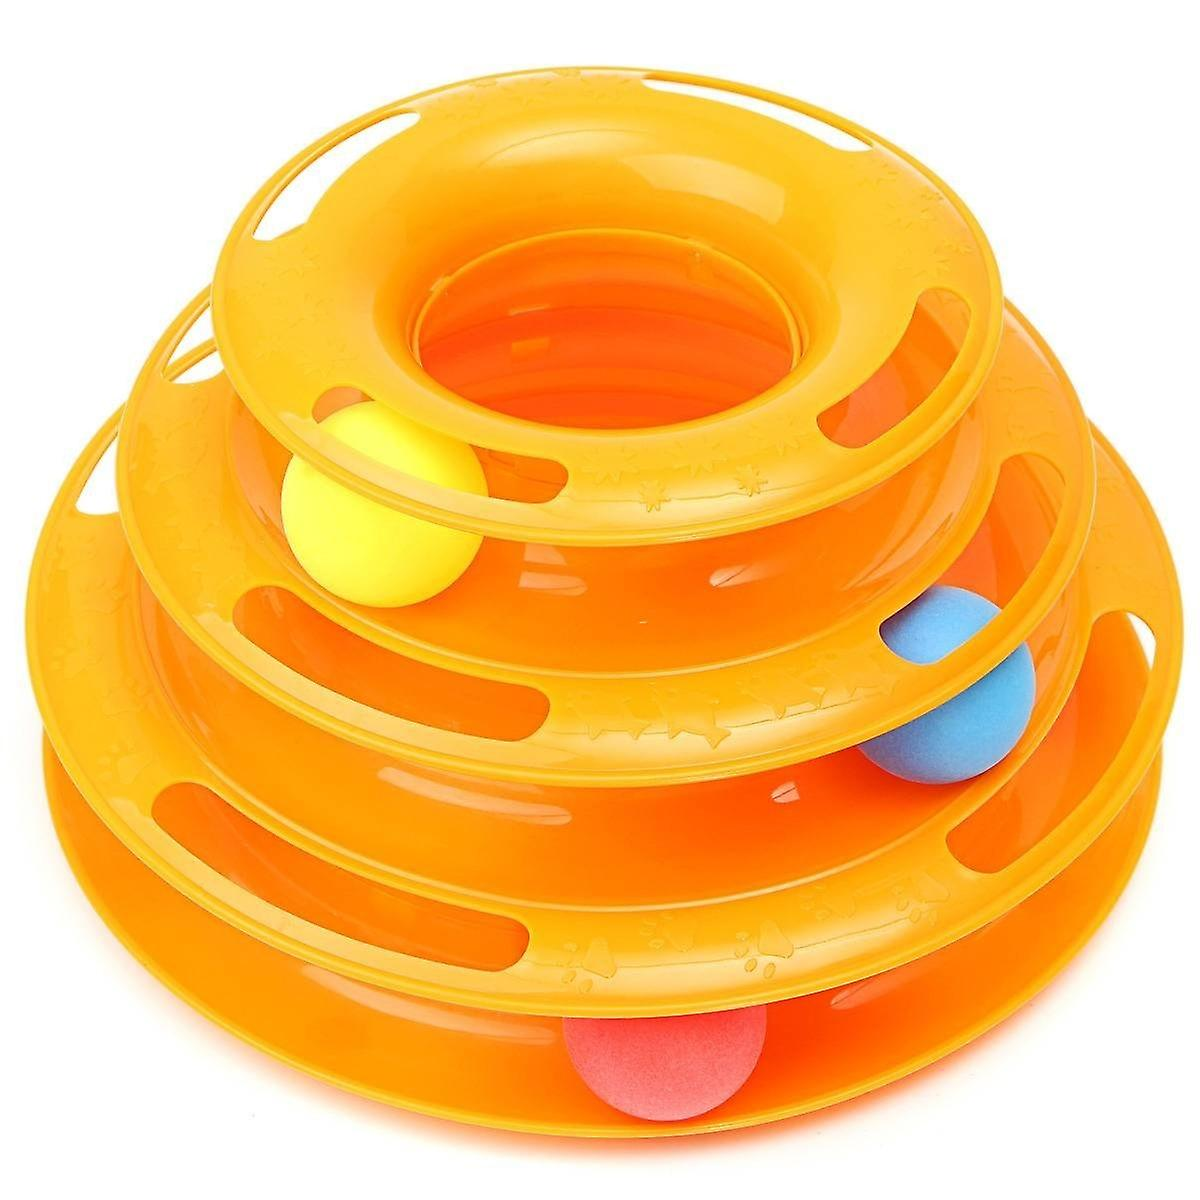 Games Labyrinth Ball Toy 3 Layers Plastic - Safe Toy for Cats and Dogs - Ball with Labyrinth and Sounds